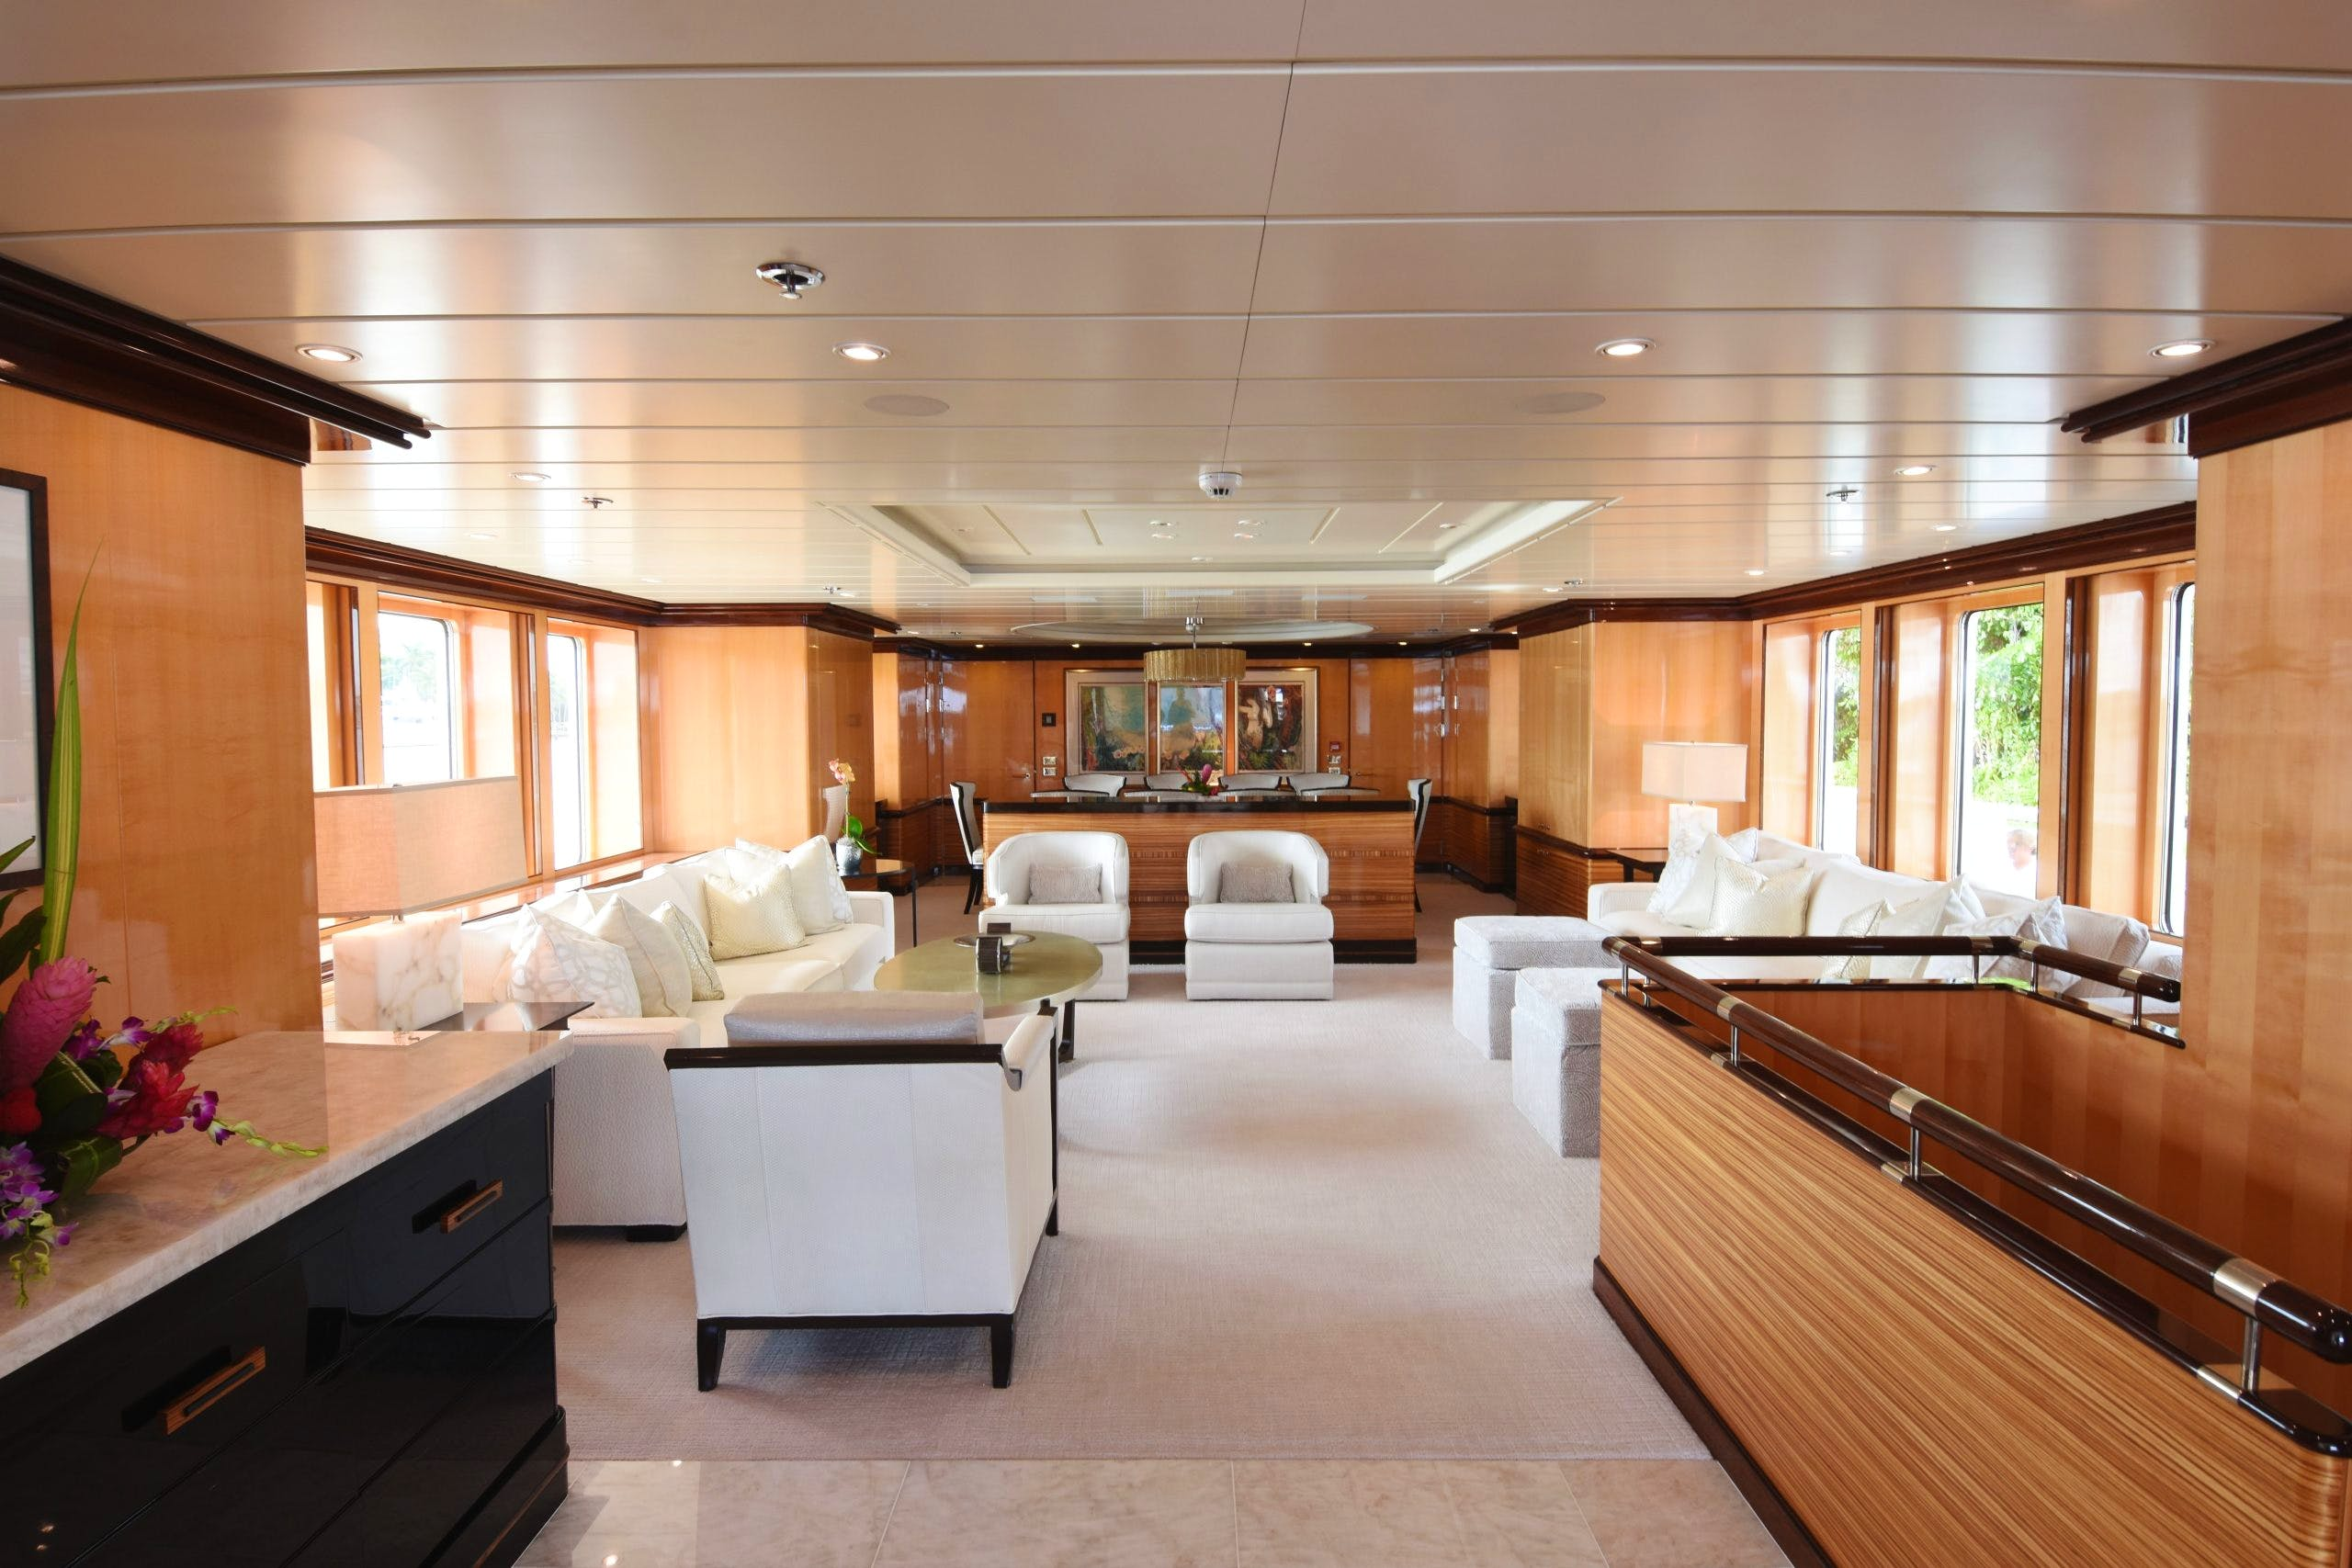 Seasonal Rates for NITA K II Private Luxury Yacht For Charter